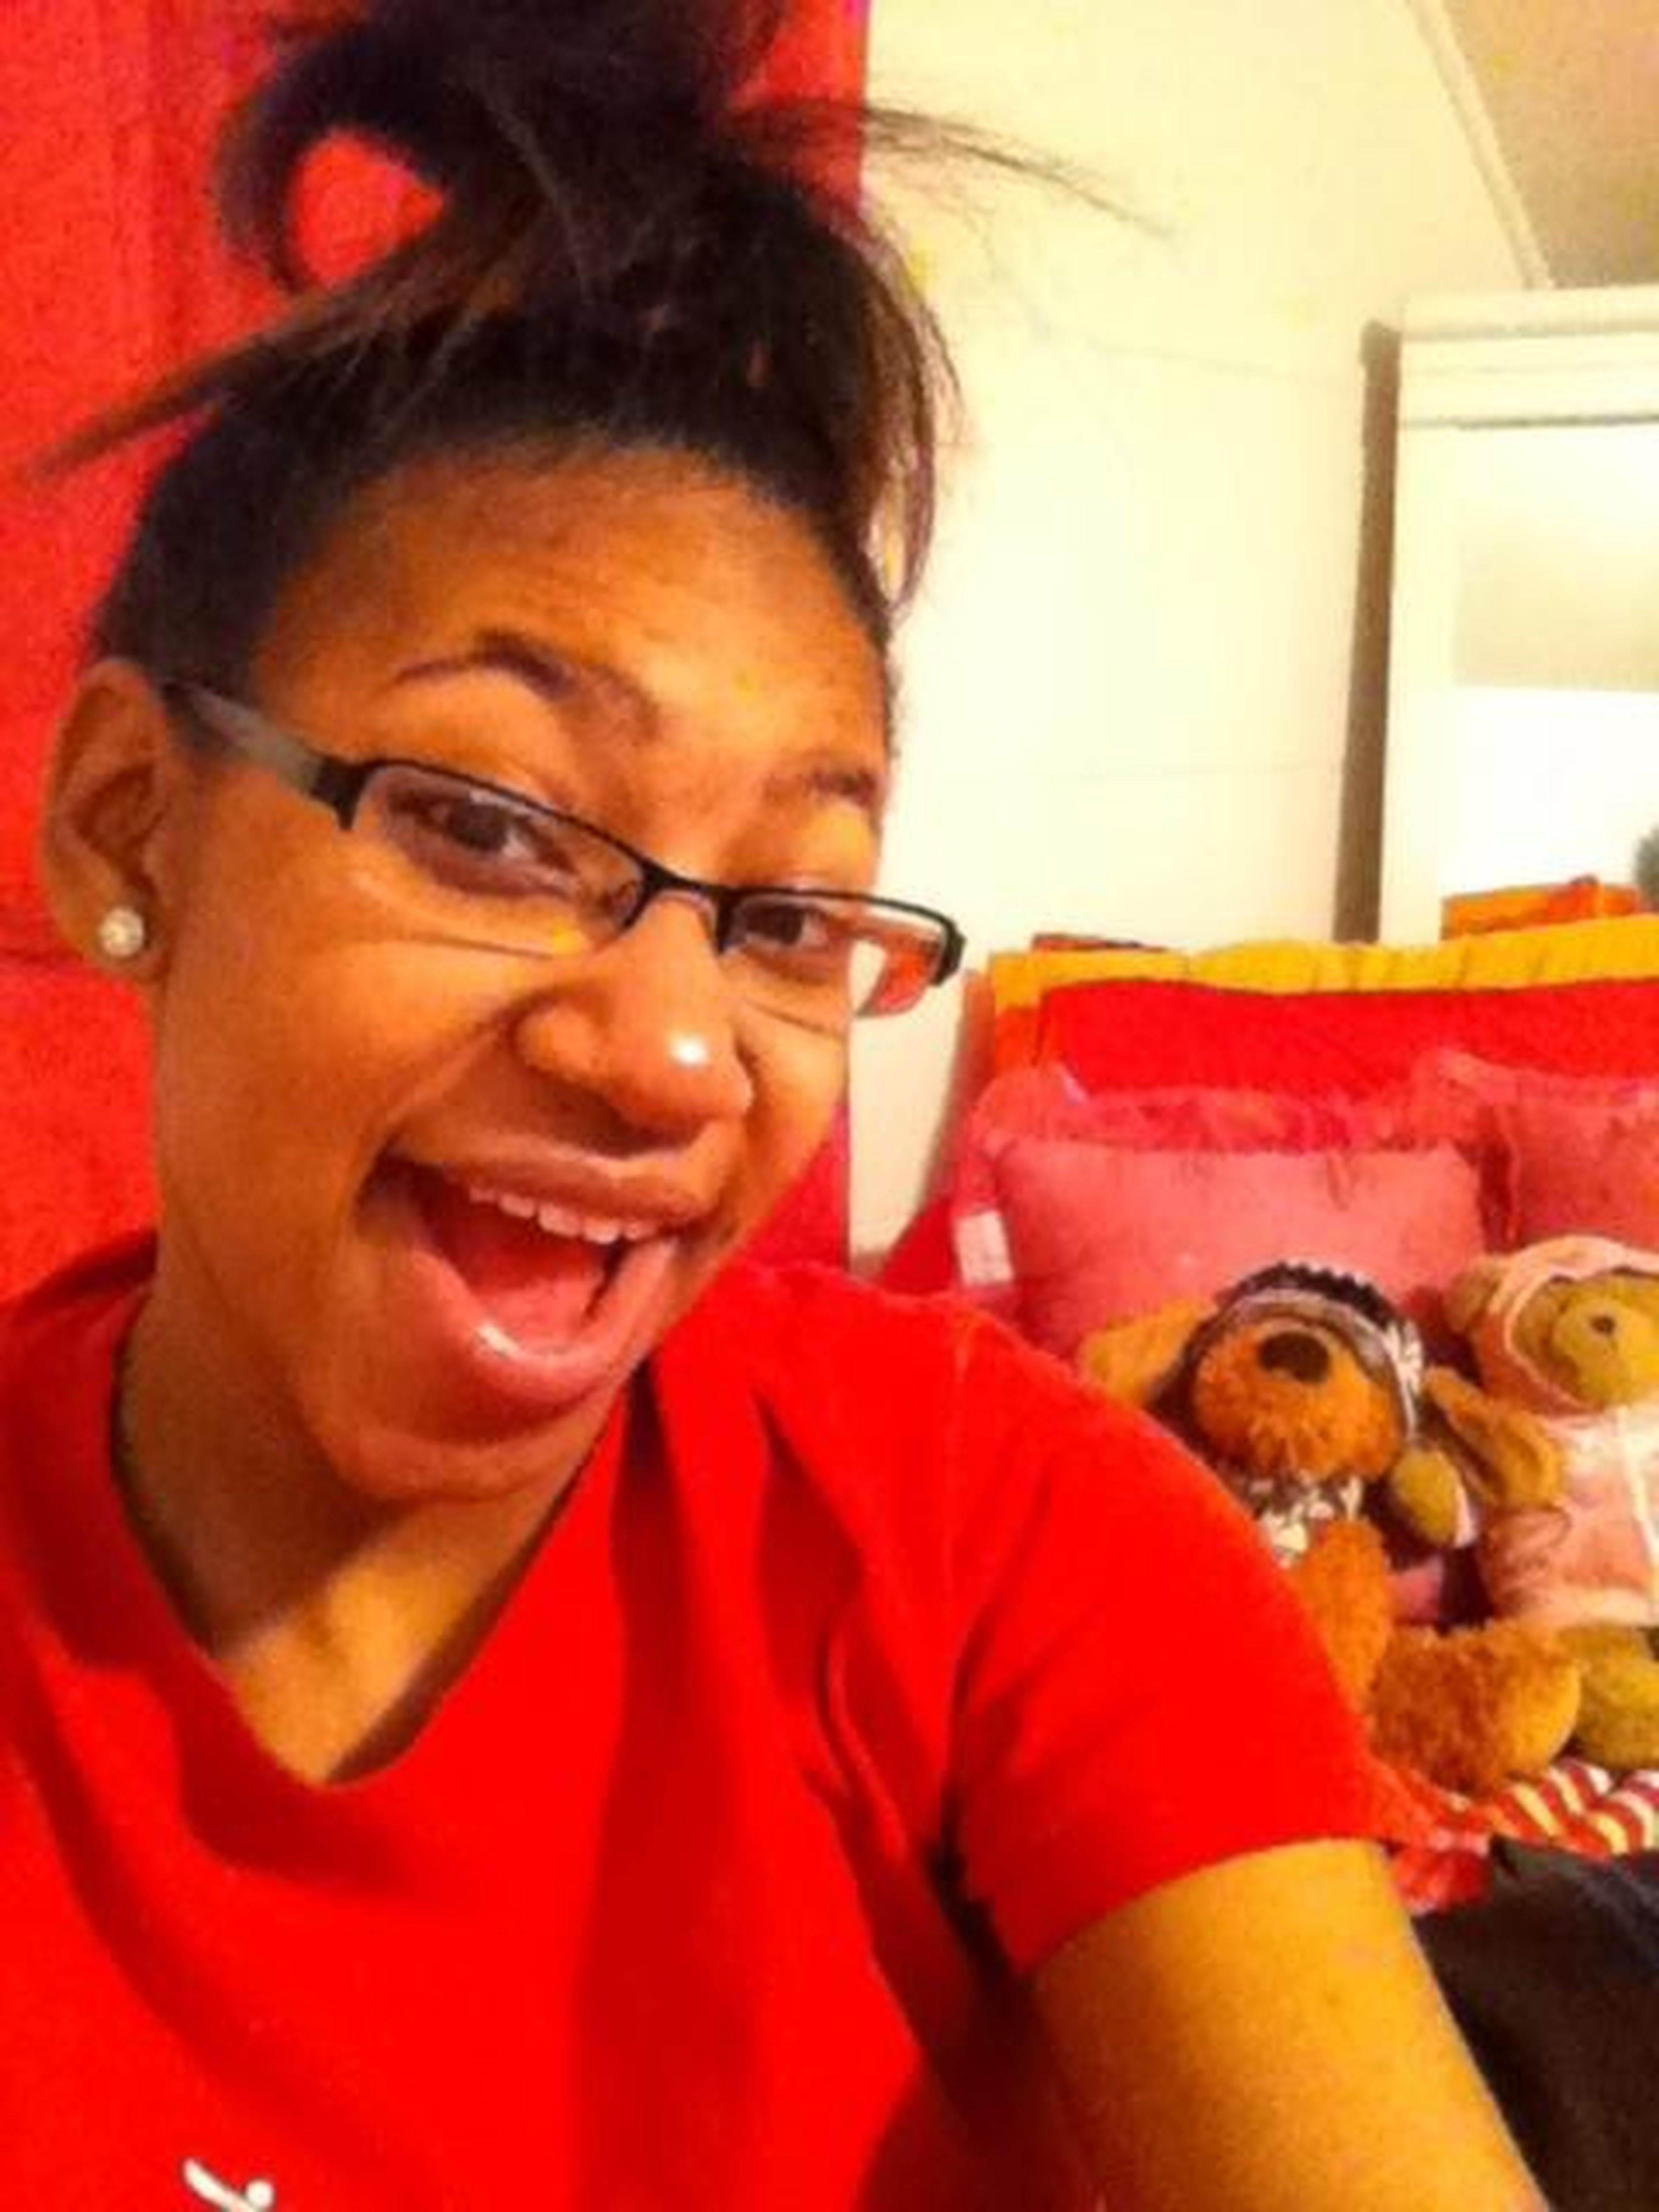 Goodnight From Me And My Babies